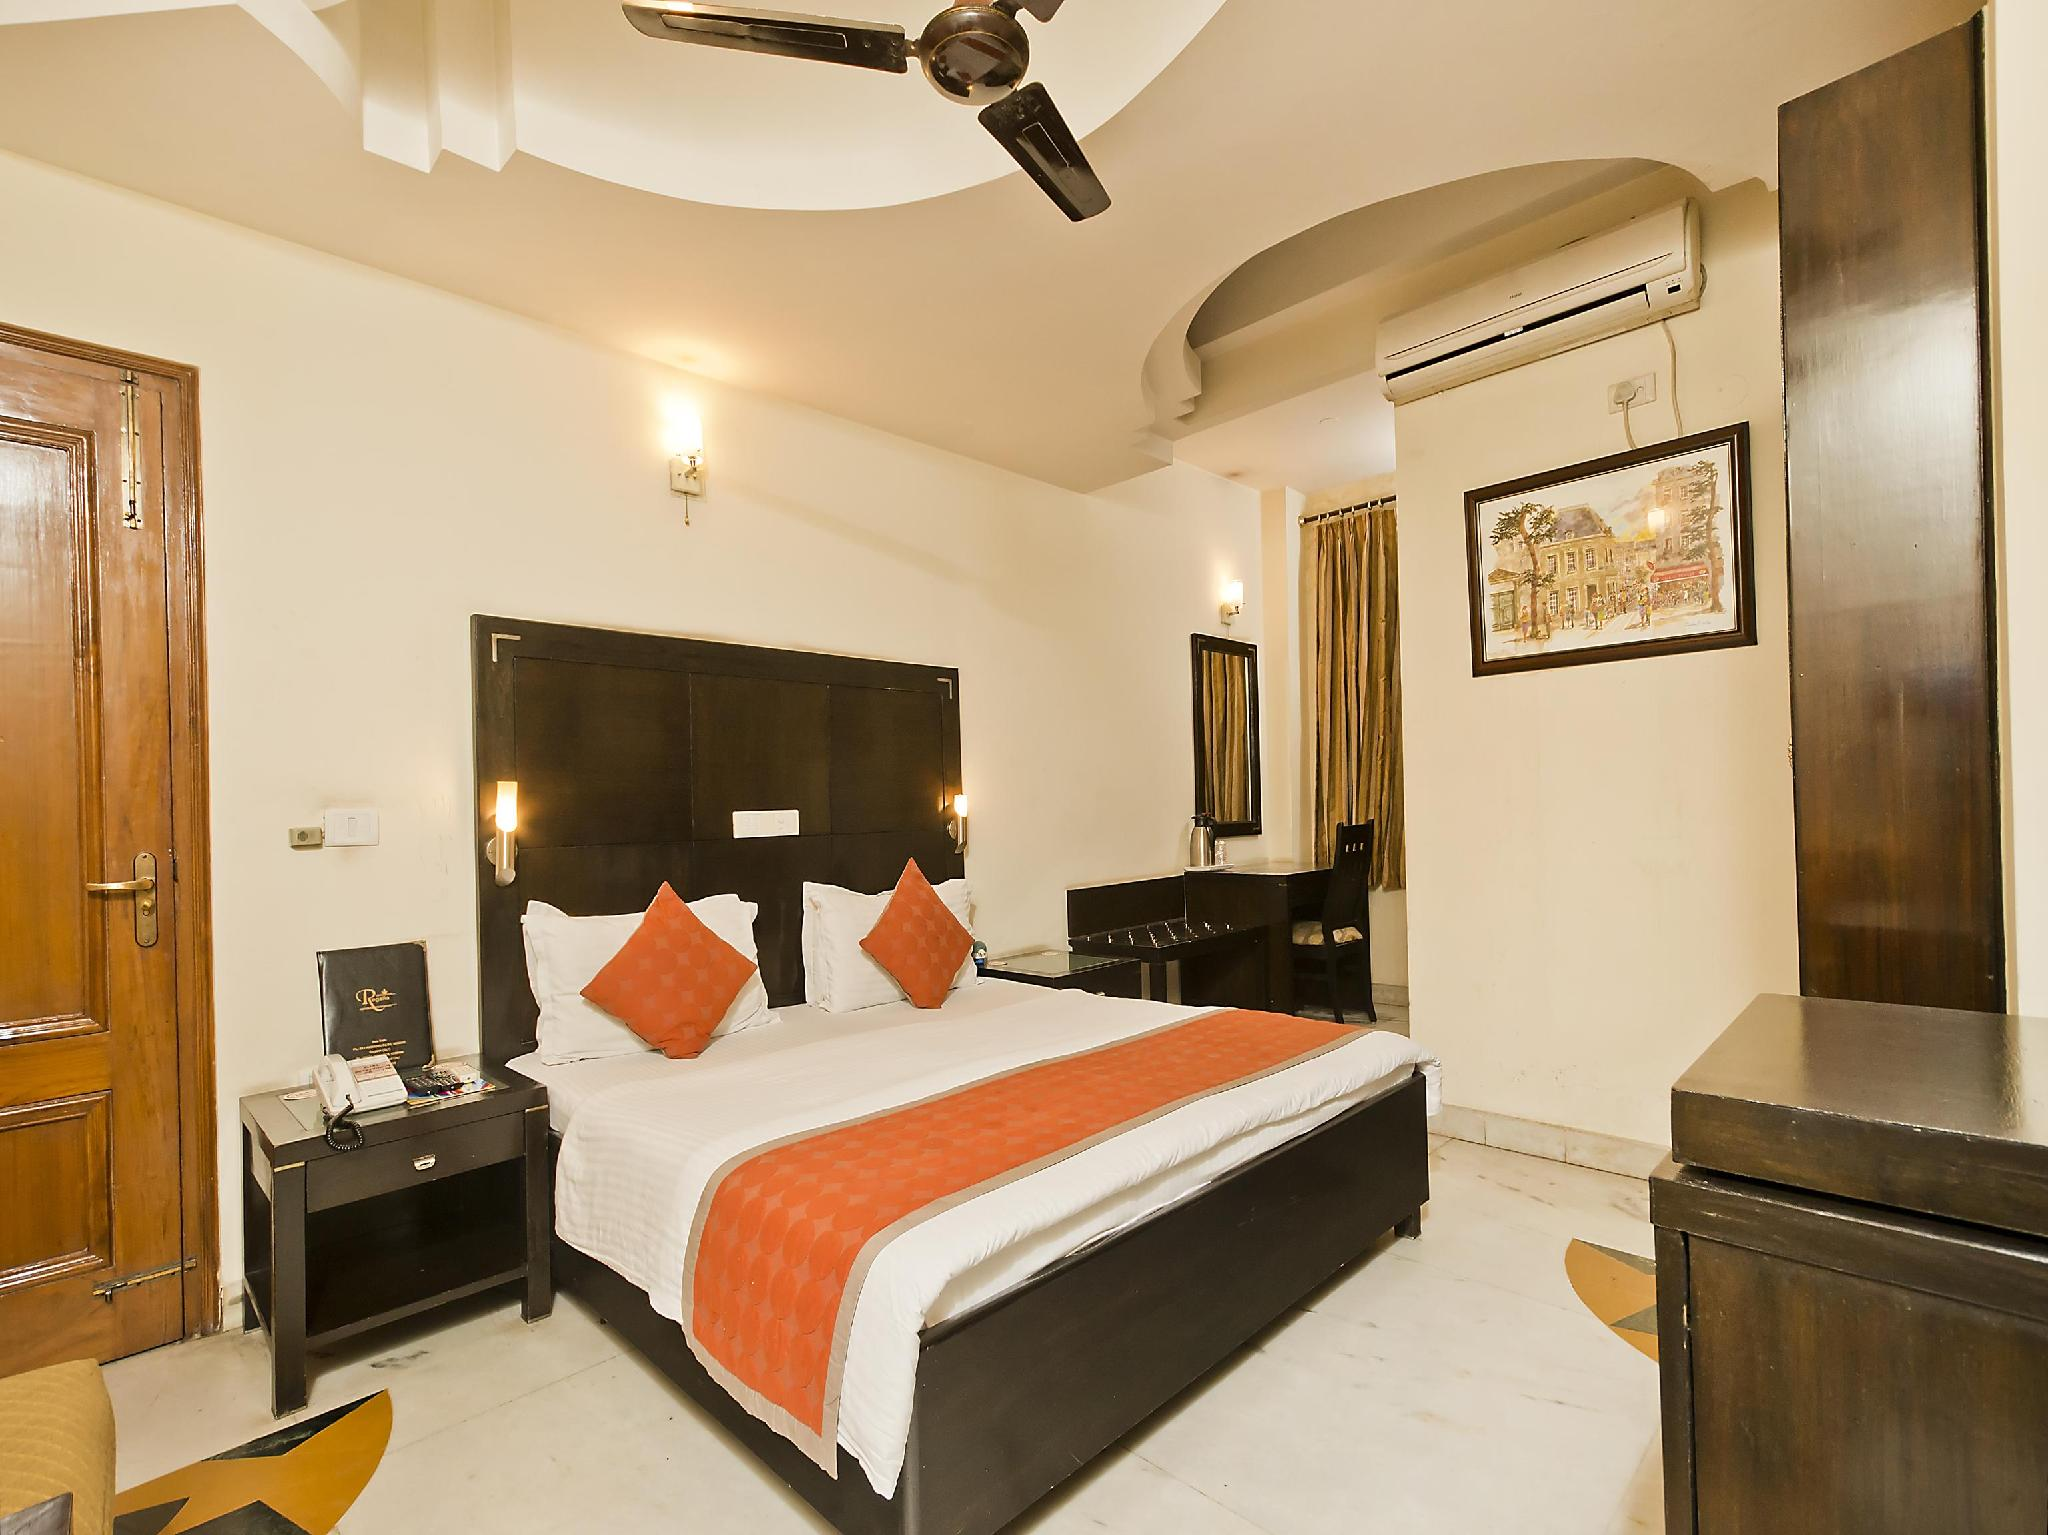 OYO Rooms-Greater Kailash 1 Hotel